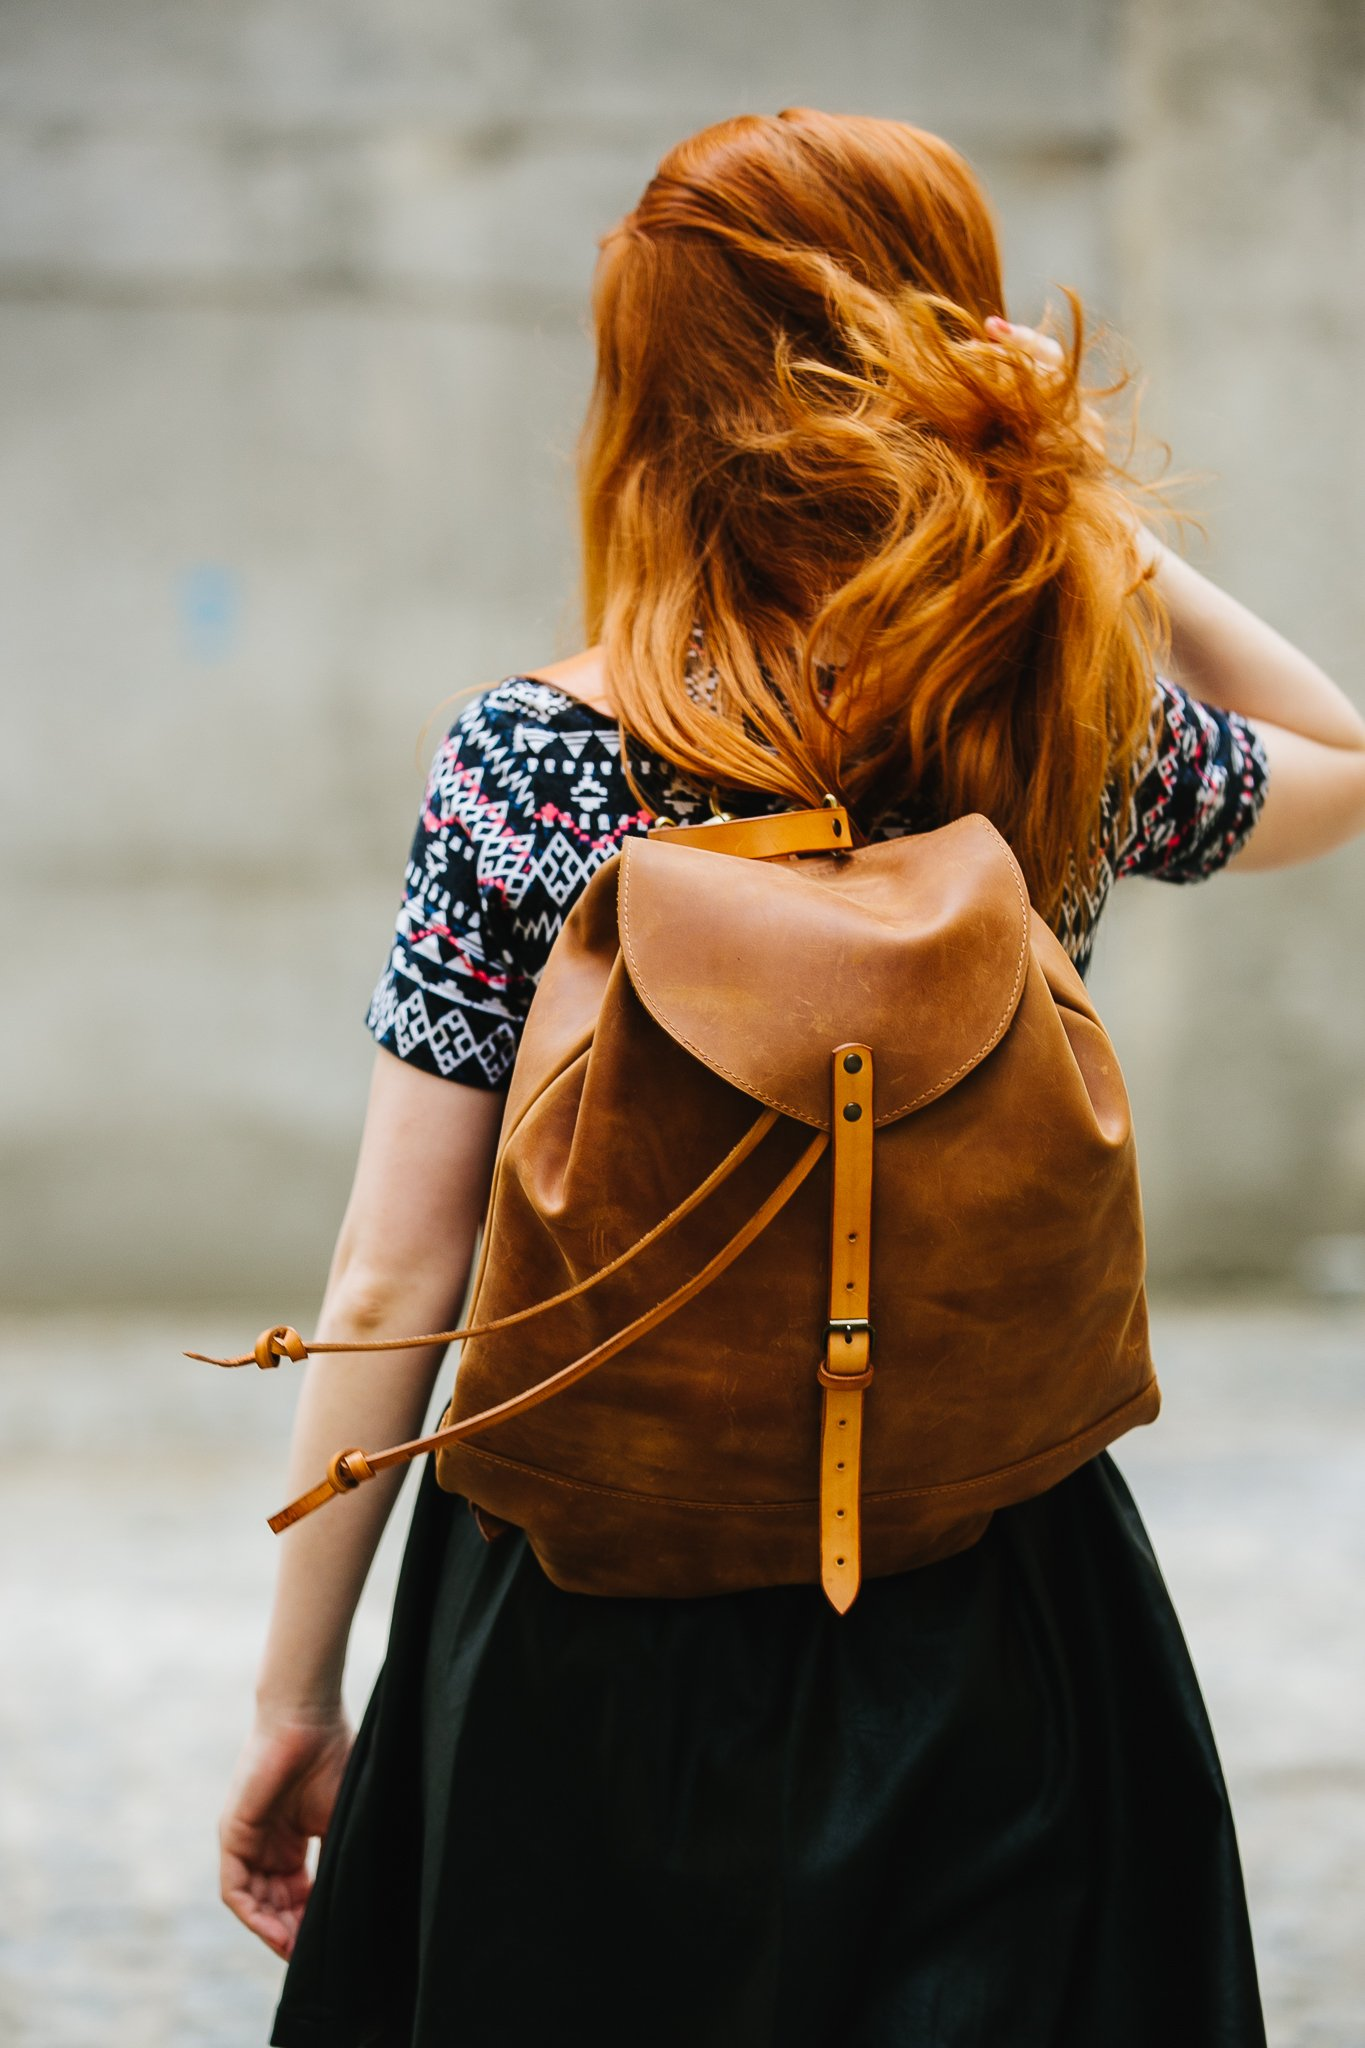 Leather backpack Woman backpack Ladies backpack Women's daily pack Chestnut leather backpack Small backpack Women's gift